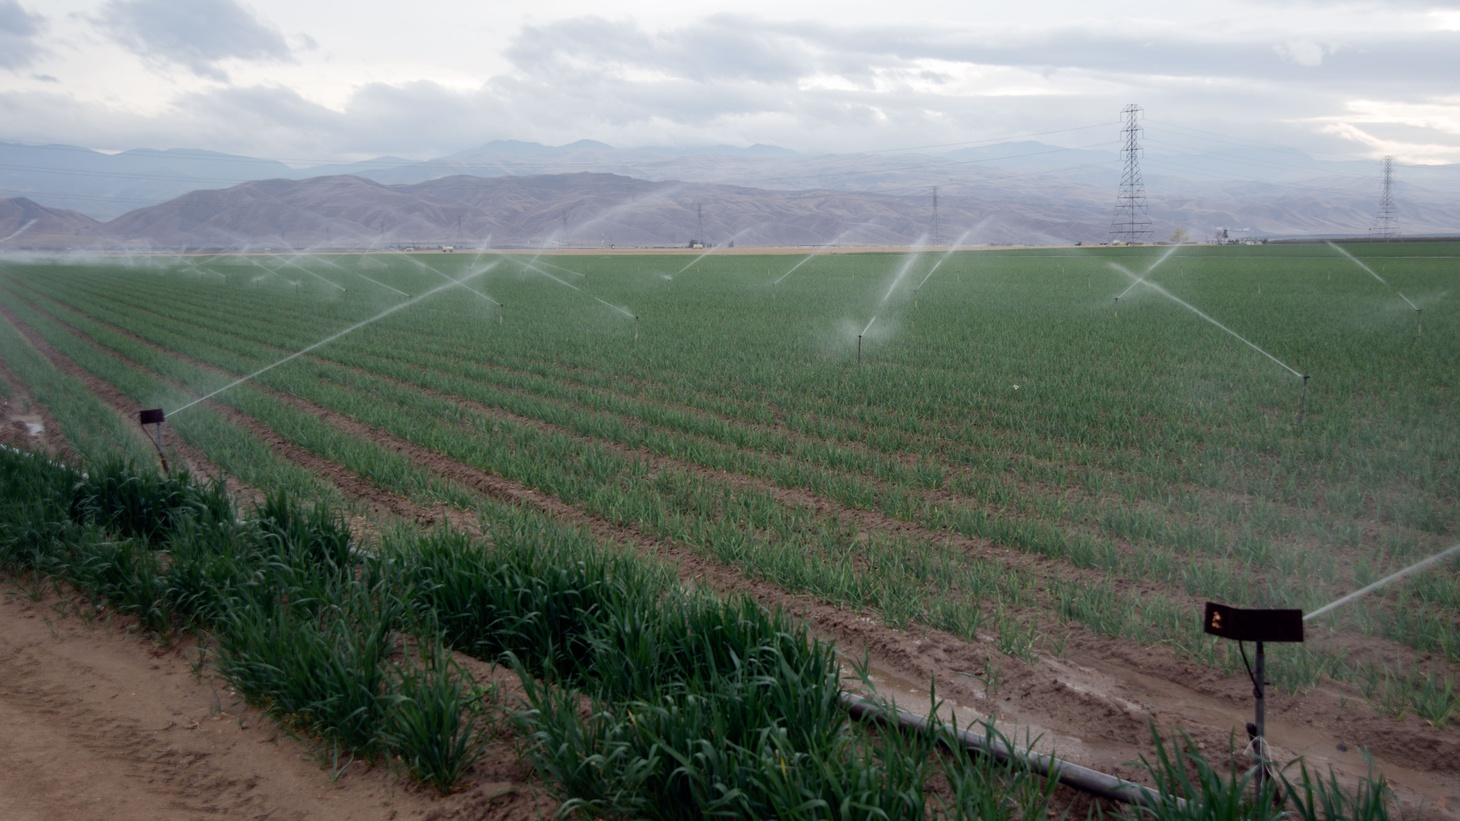 Amid ongoing drought, California gives local water providers control over water restrictions. Meanwhile, the US military considers climate change a threat to national security.